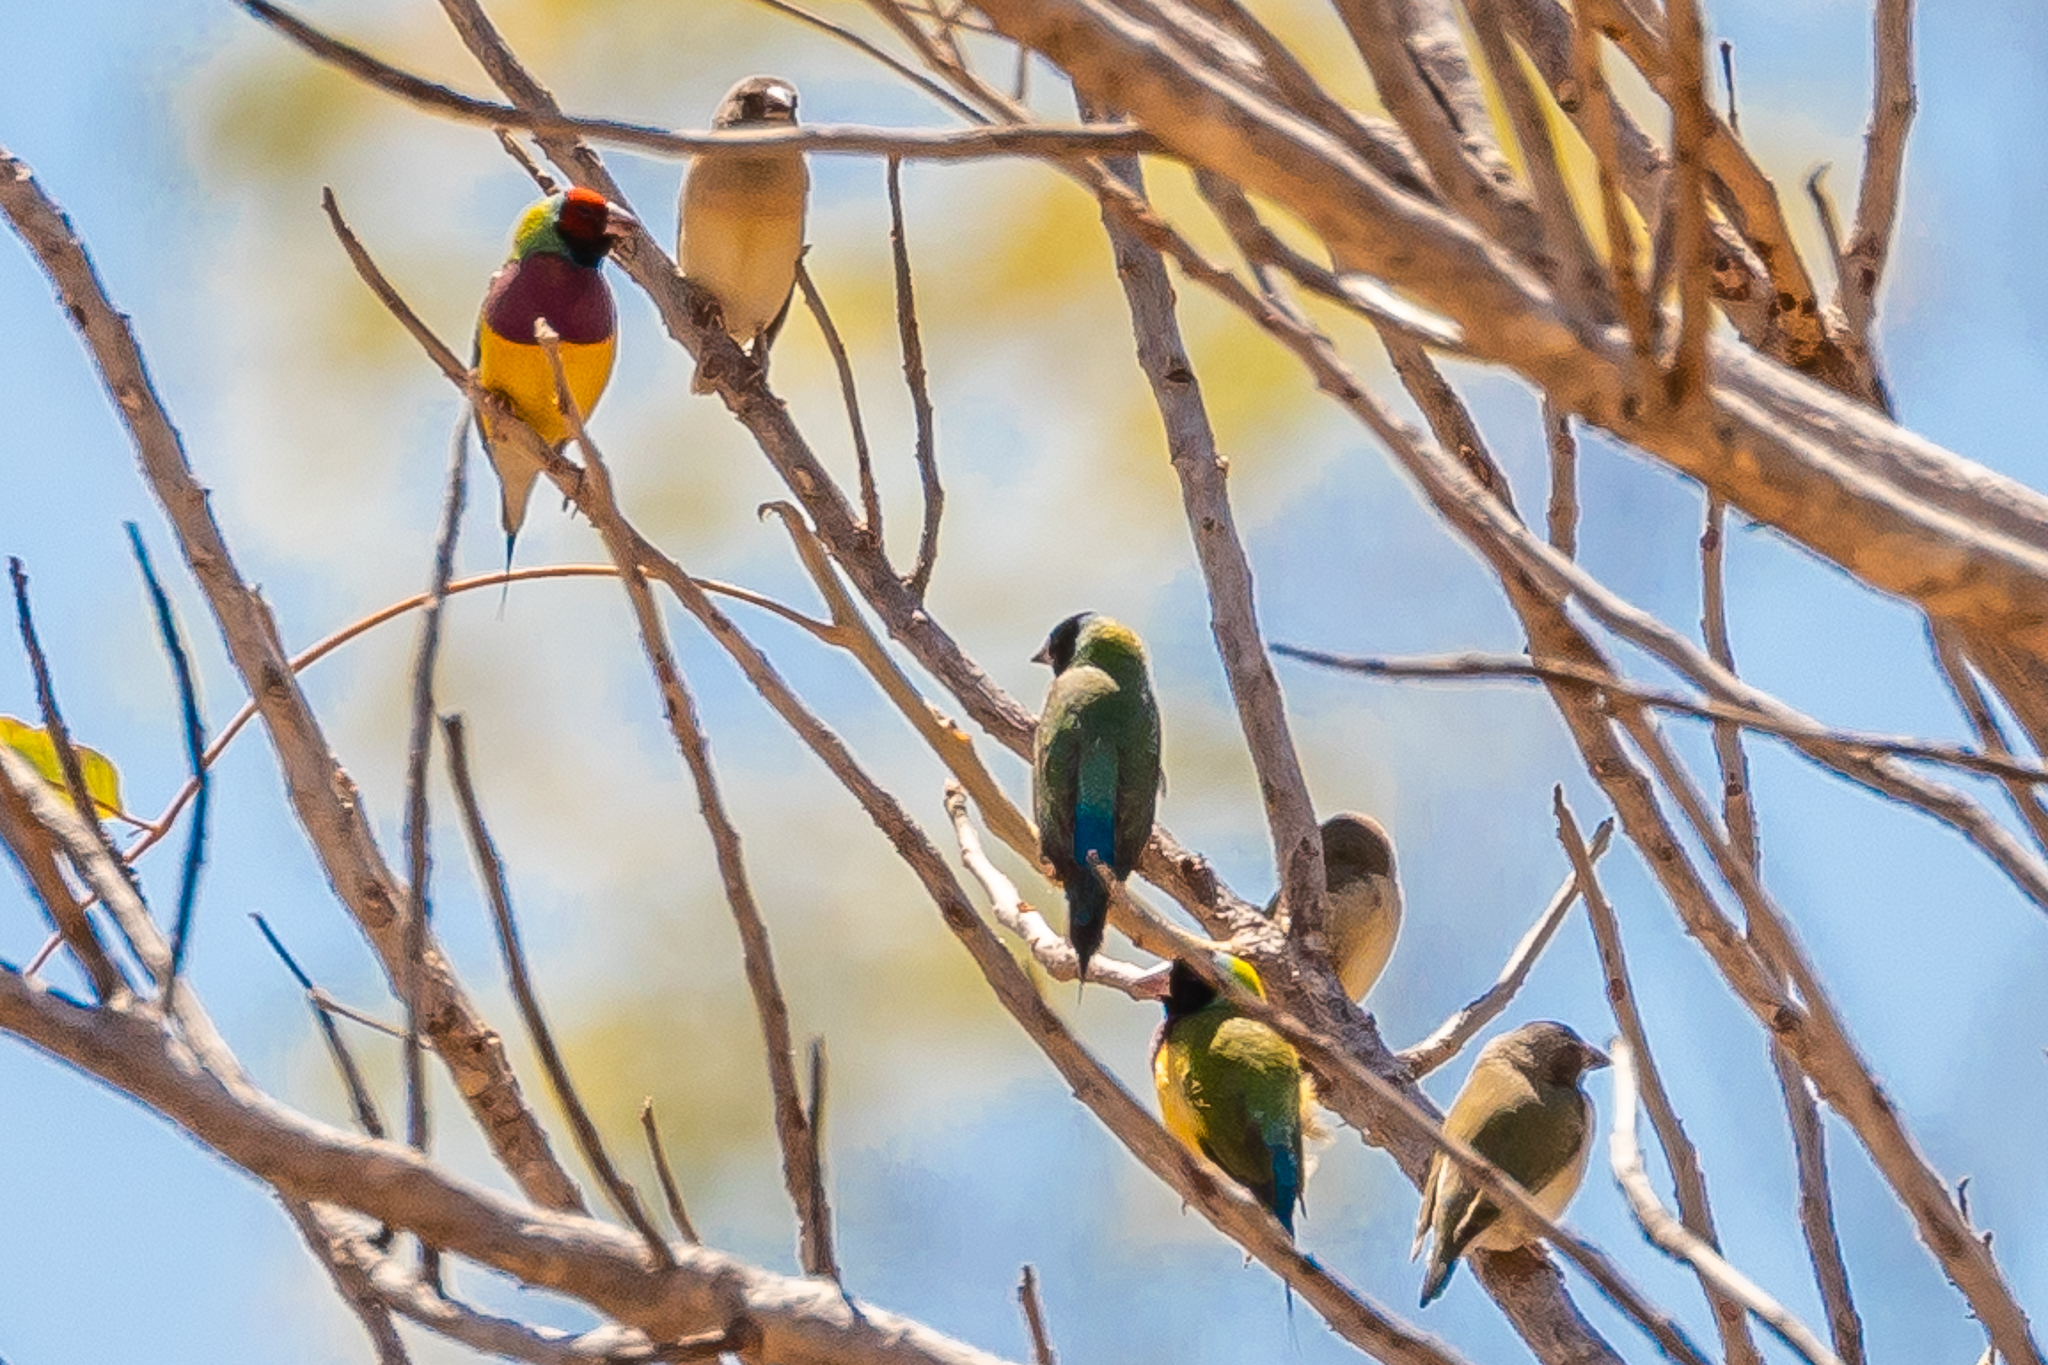 Red-headed and Black-headed Gouldian Finches (14 cm) perch above a waterhole near Katherine, NT. Gouldians feed on tall grasses across the tropical north, sometimes taking insects on the wing.